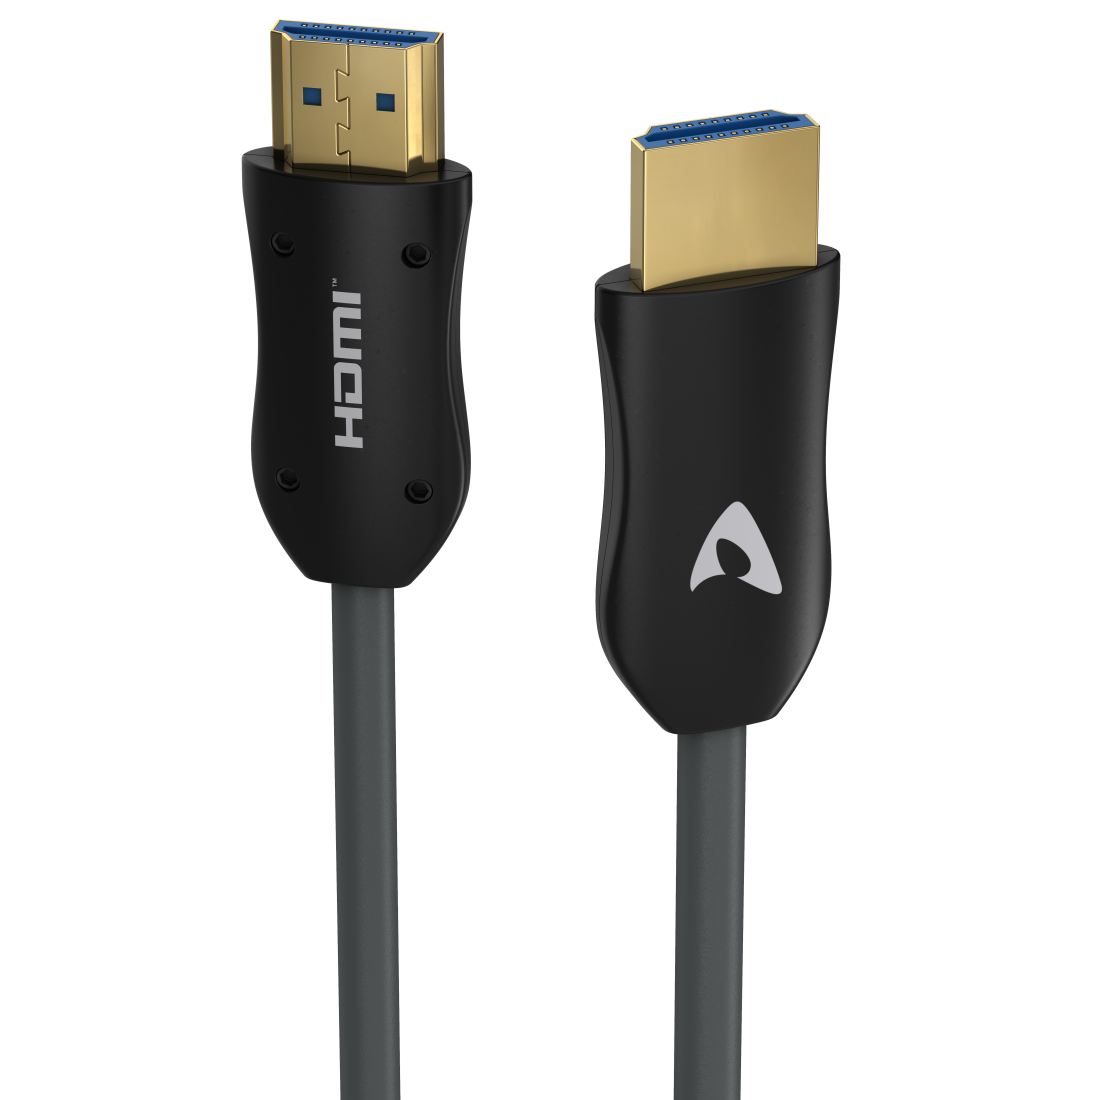 abx High-Res Image - Avinity, Optical, Active HDMI™ Cable, ultra-thin, plug-plug, gold-plated, 100m